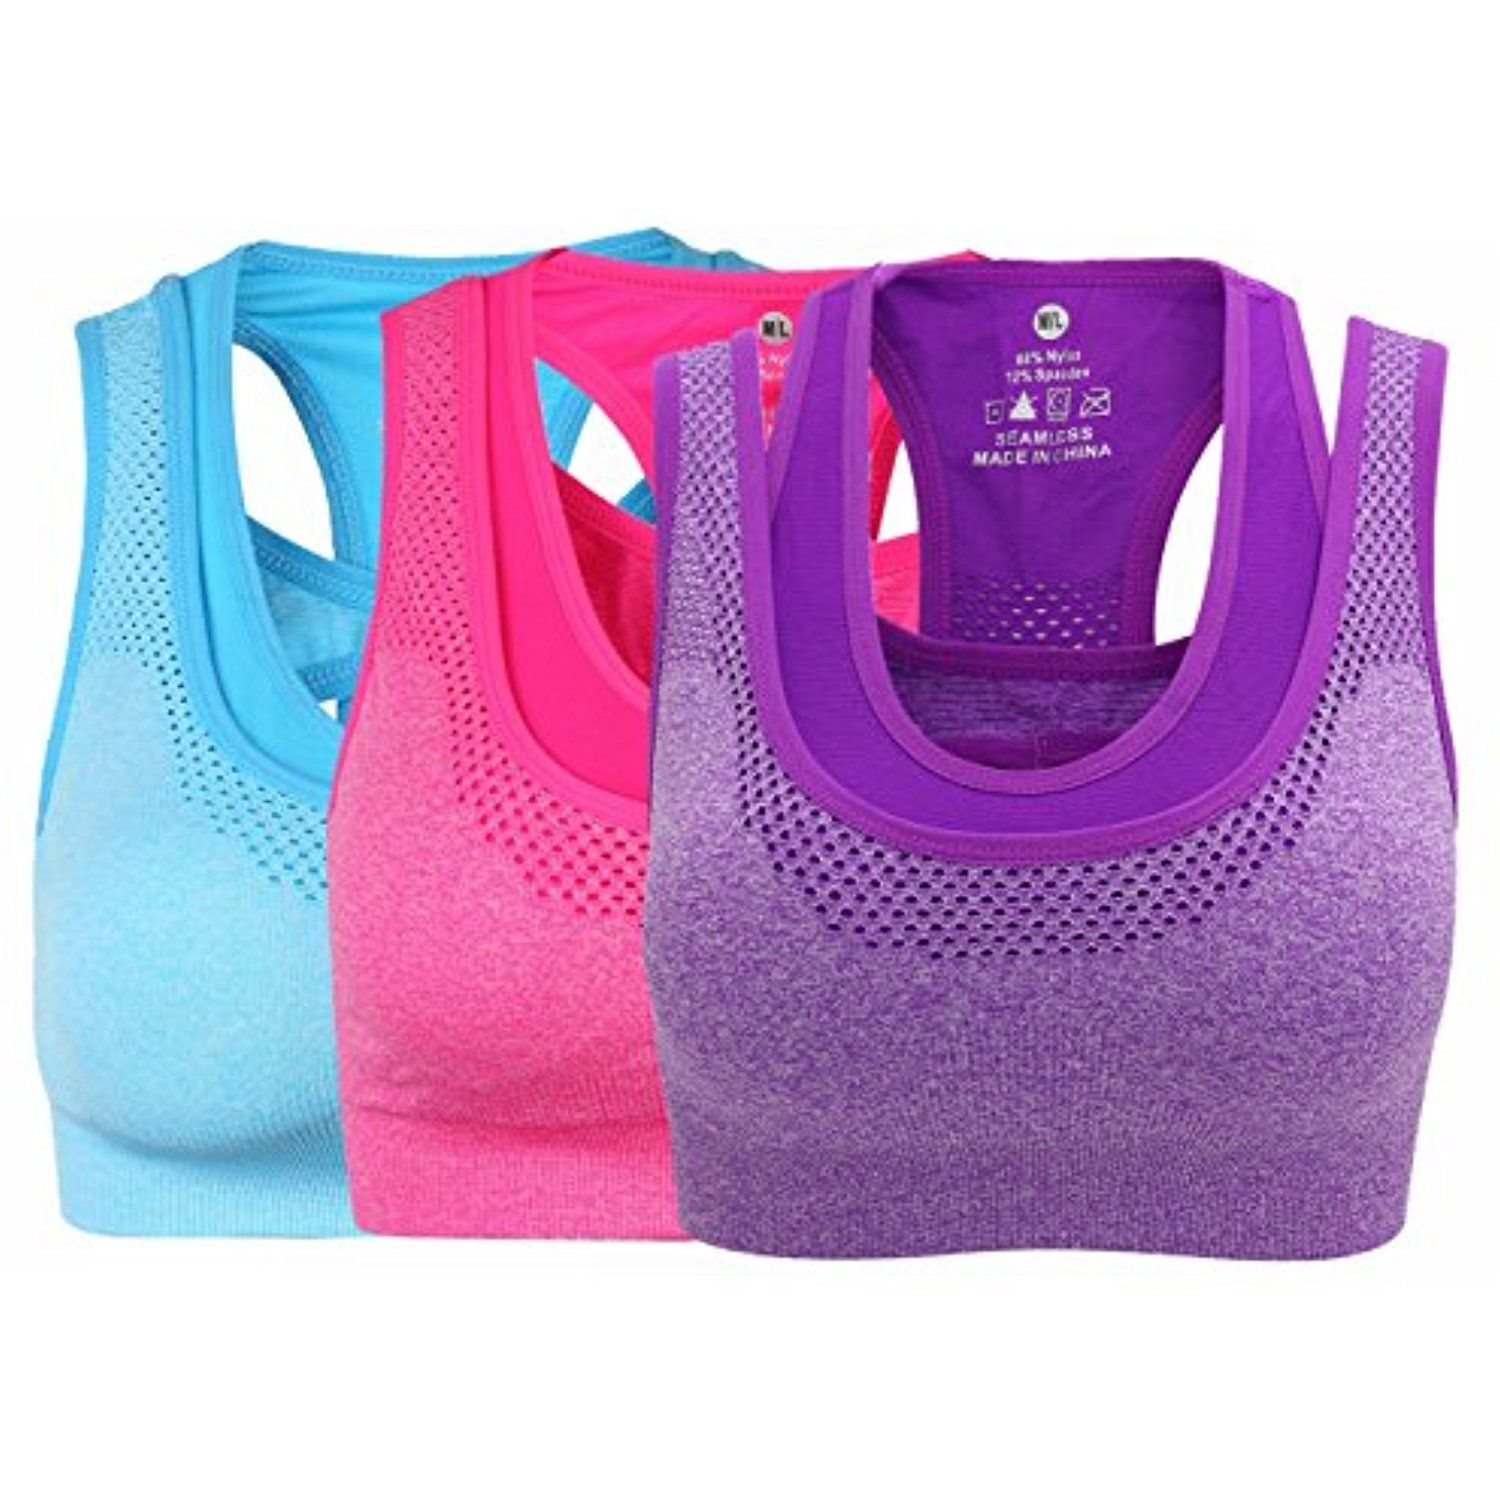 309d4601e TINSINO Women s Sports Bra Fitness Racerback Workout Yoga Bras   You can  find more details by visiting the image link. (This is an affiliate link)   Clothing